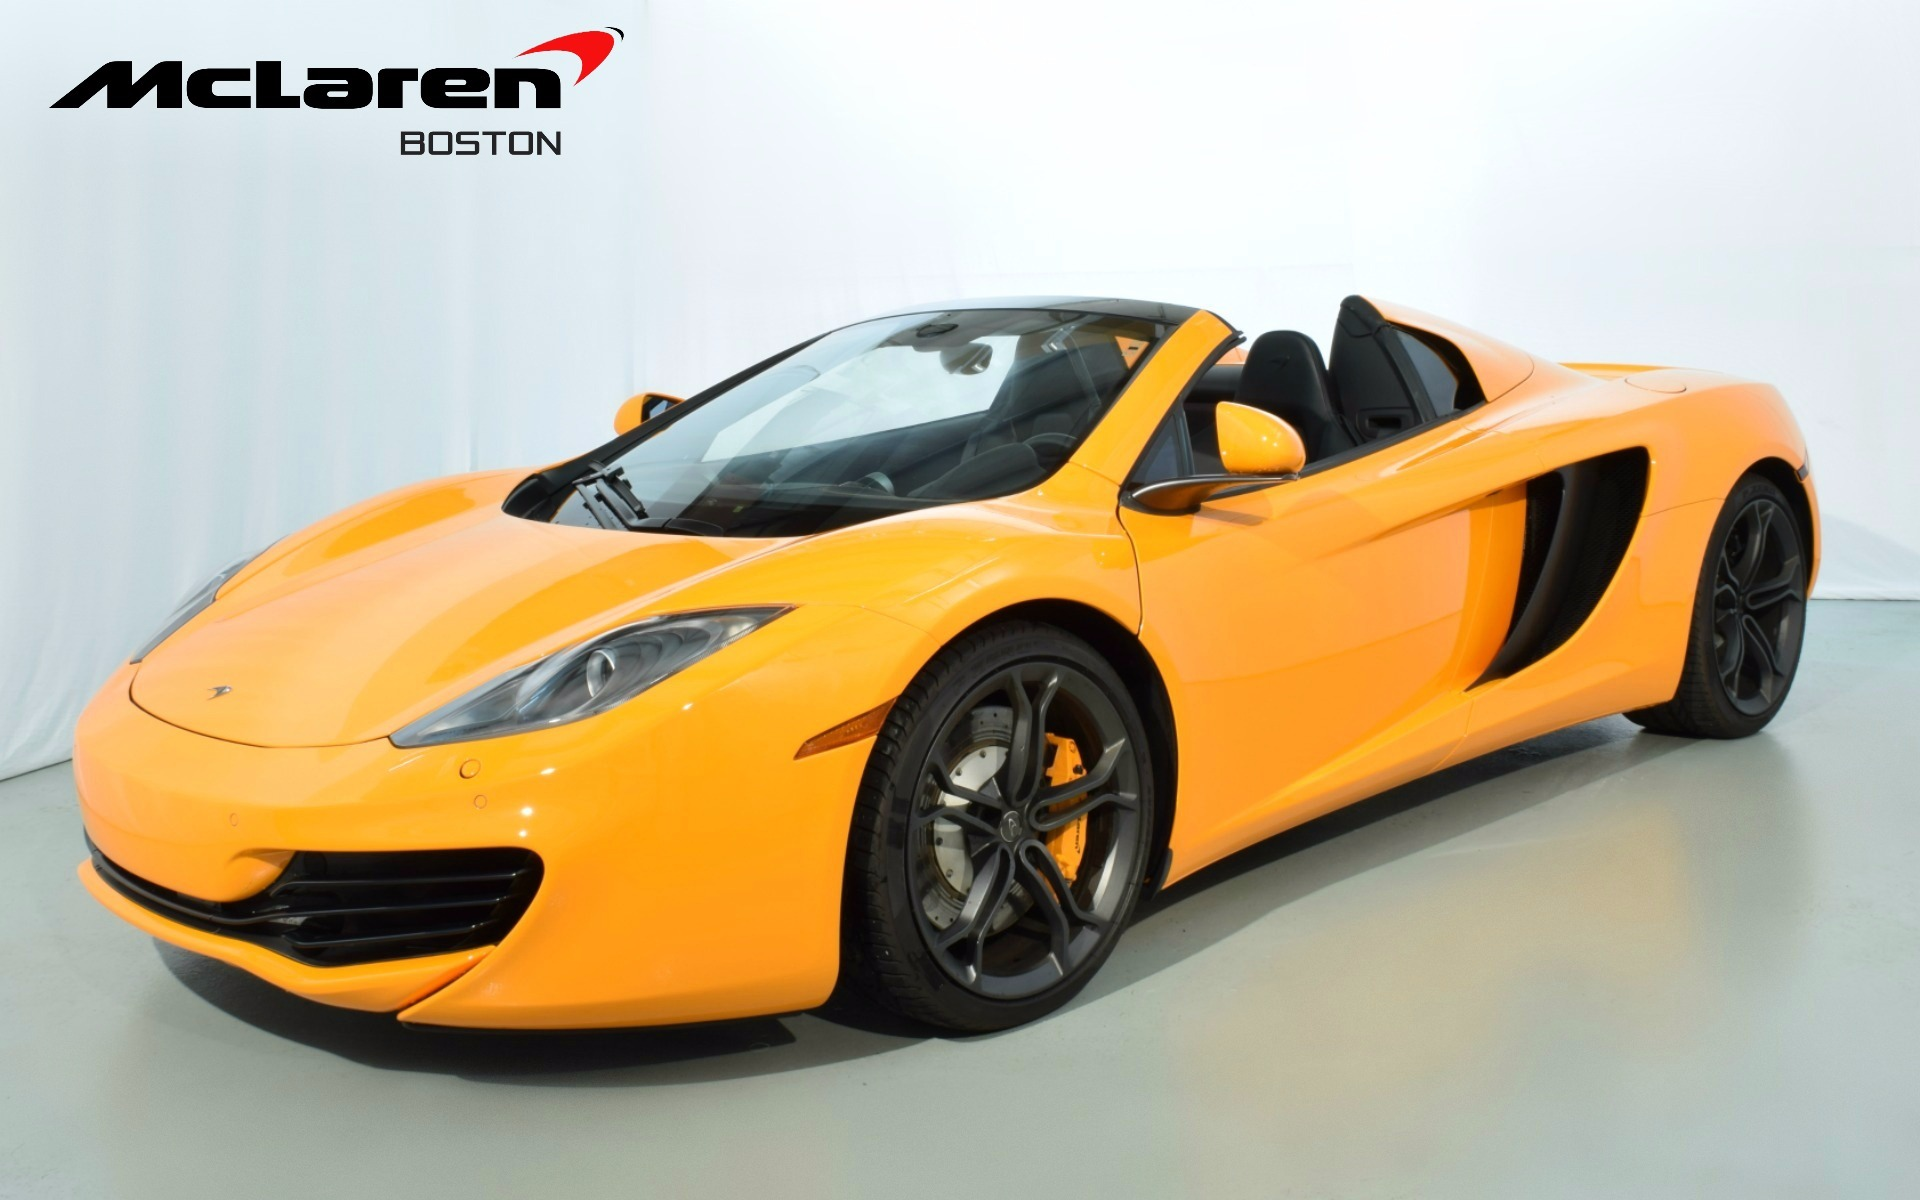 2014 mclaren mp4 12c spider for sale in norwell ma 003416 mclaren boston. Black Bedroom Furniture Sets. Home Design Ideas